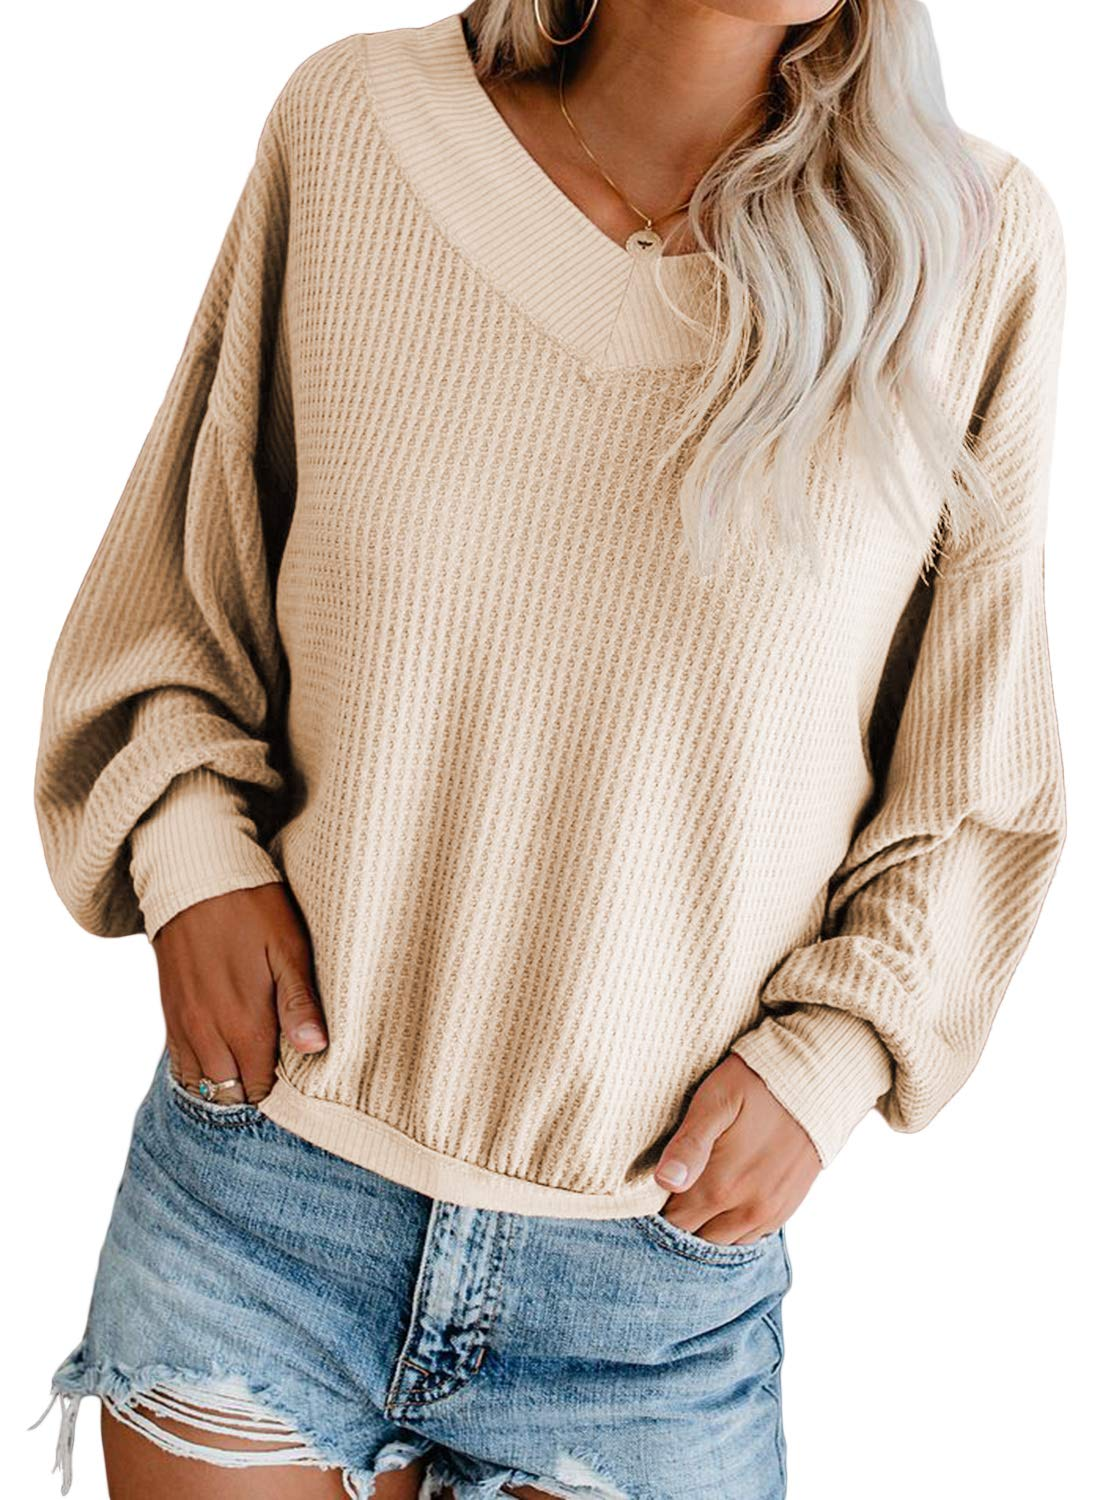 Silindashop Womens Waffle Knit V-Neck Long Sleeve Off The Shoulder Pullover Sweater Oversized Loose Top Shirts